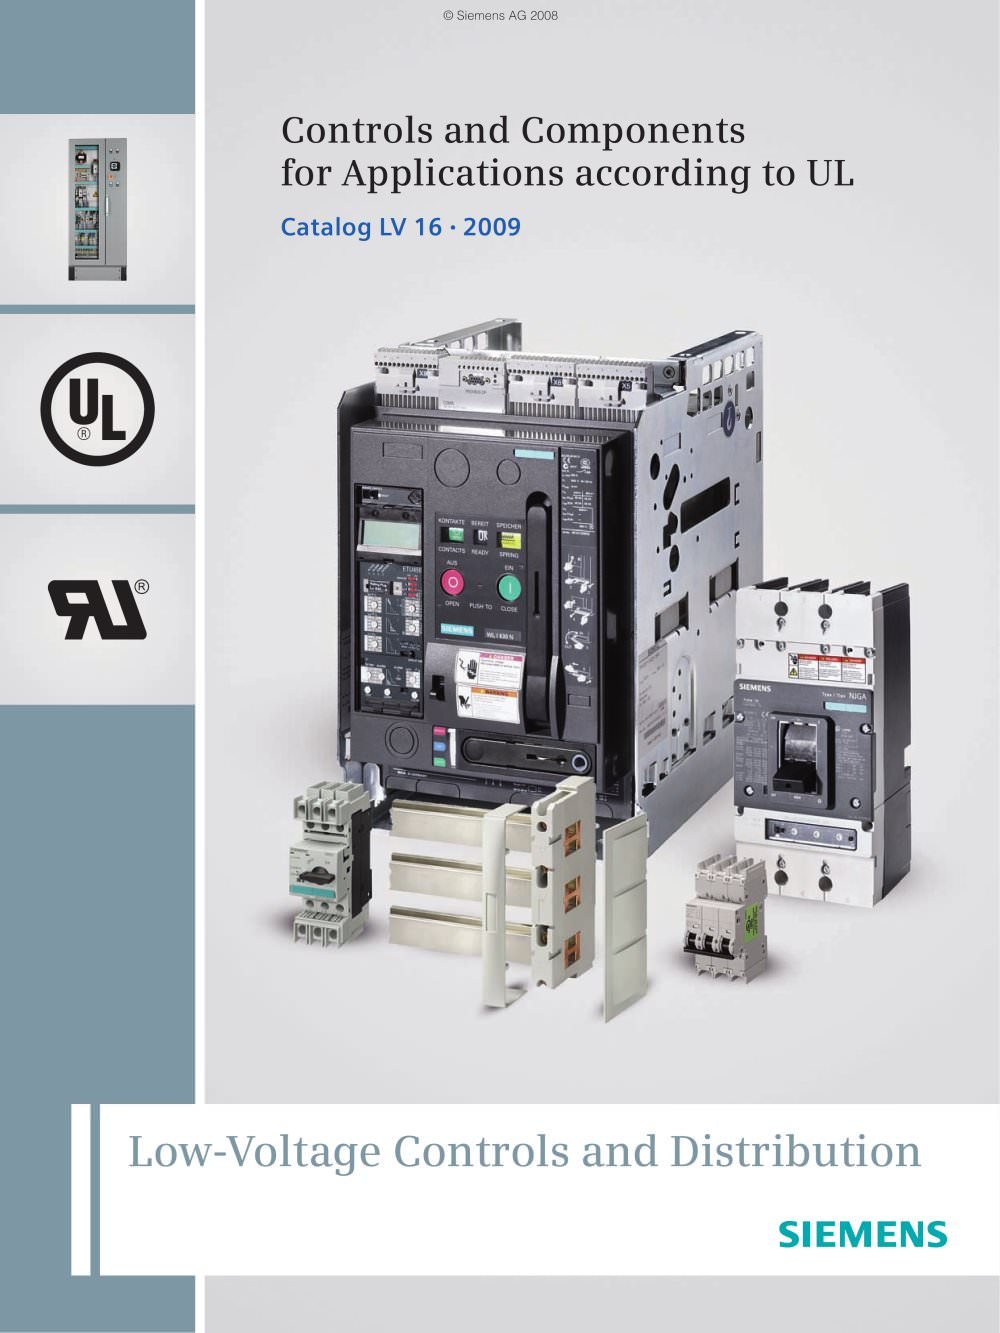 Types Of Low Voltage Circuit Breakers Pdf Wiring Diagram Services Air Breaker Siemens Power Automotive U2022 Rh Nfluencer Co Airpax Cross Reference Chart General Switch